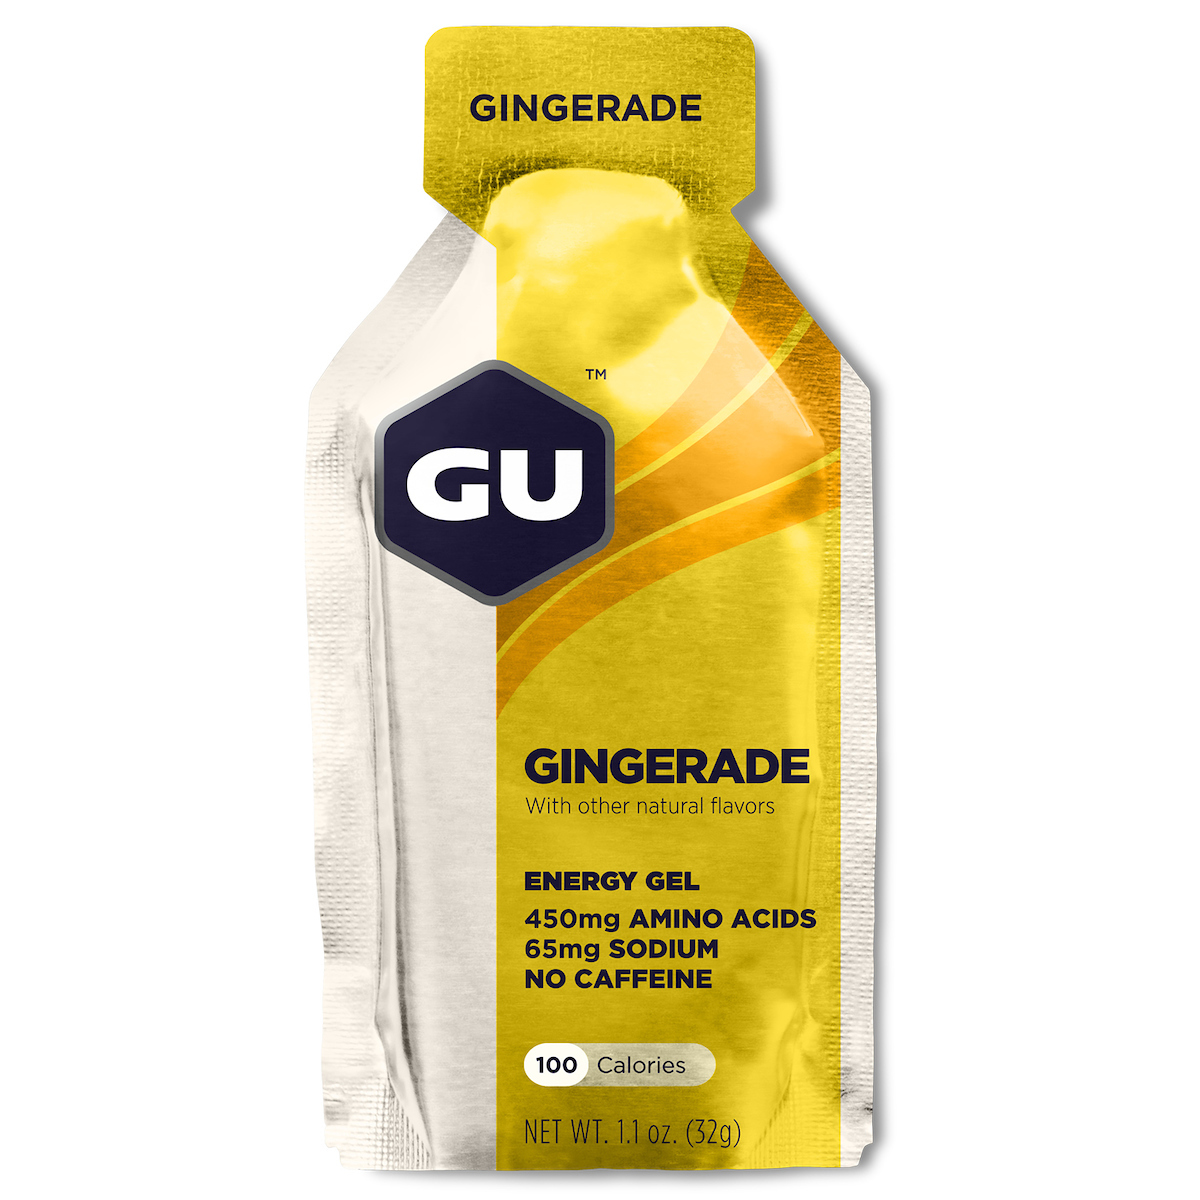 Gingerade, GU Gel, 24 Pkt Ctn